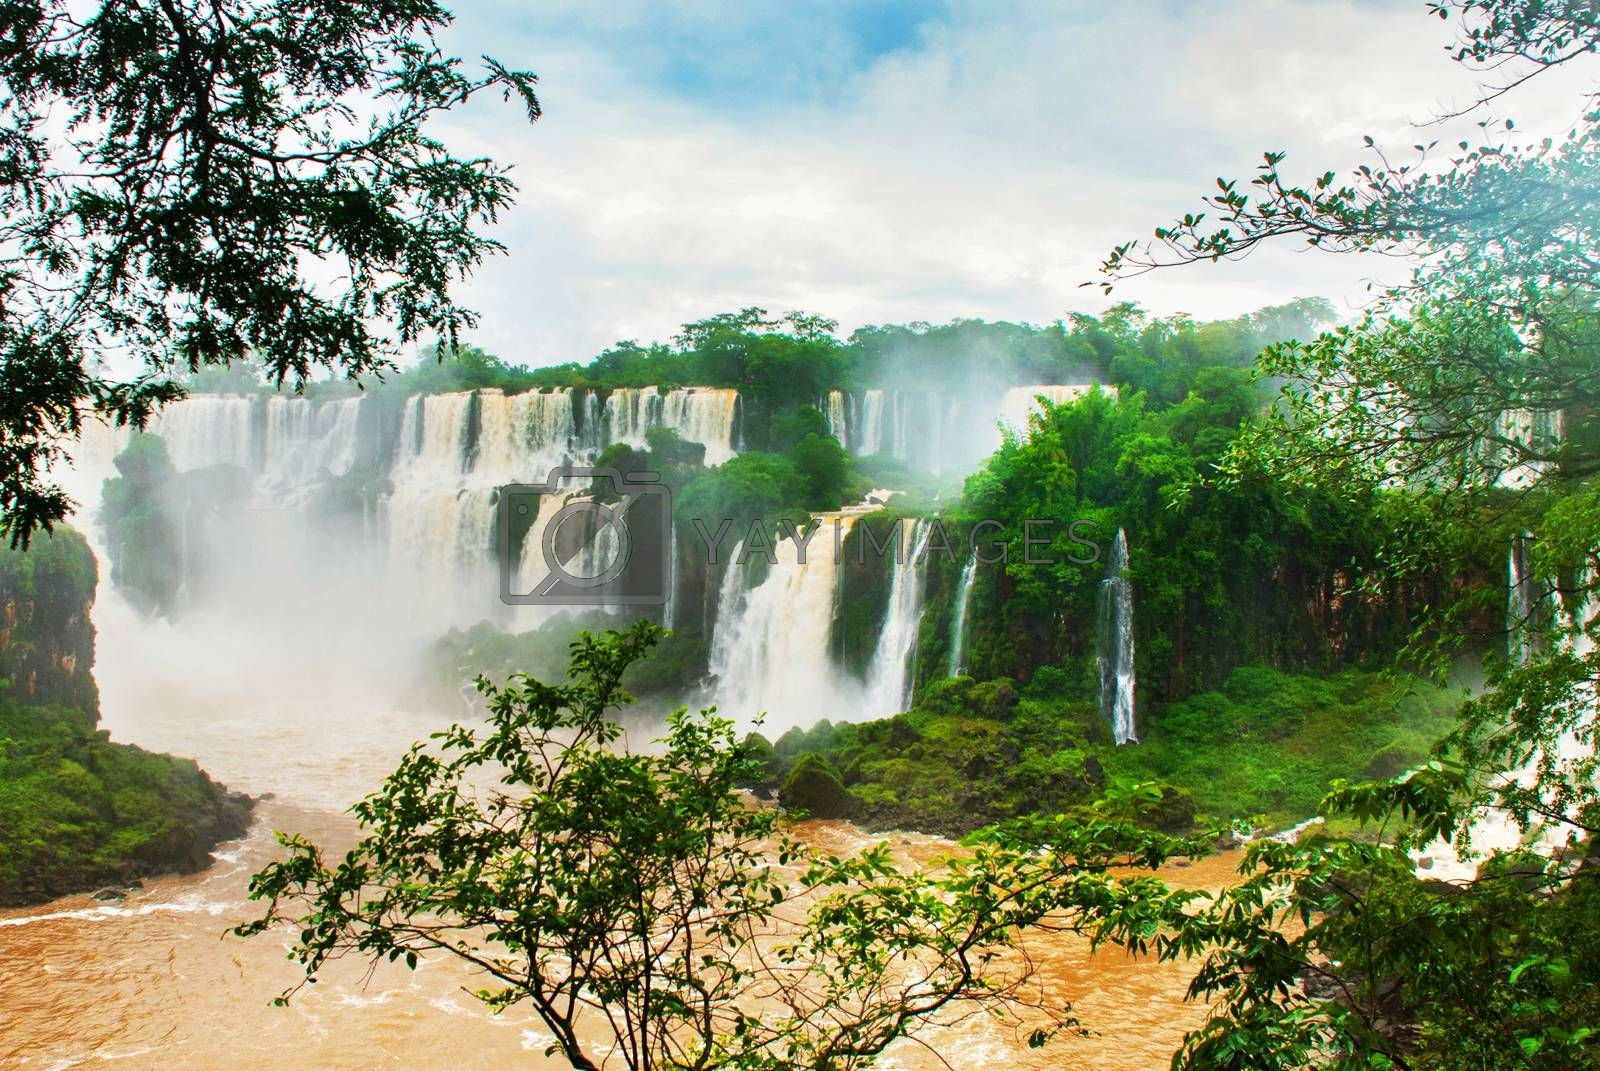 Panorama at Iguazu Falls, one of the New Seven Wonders of Nature, Argentina. UNESCO World Heritage site.